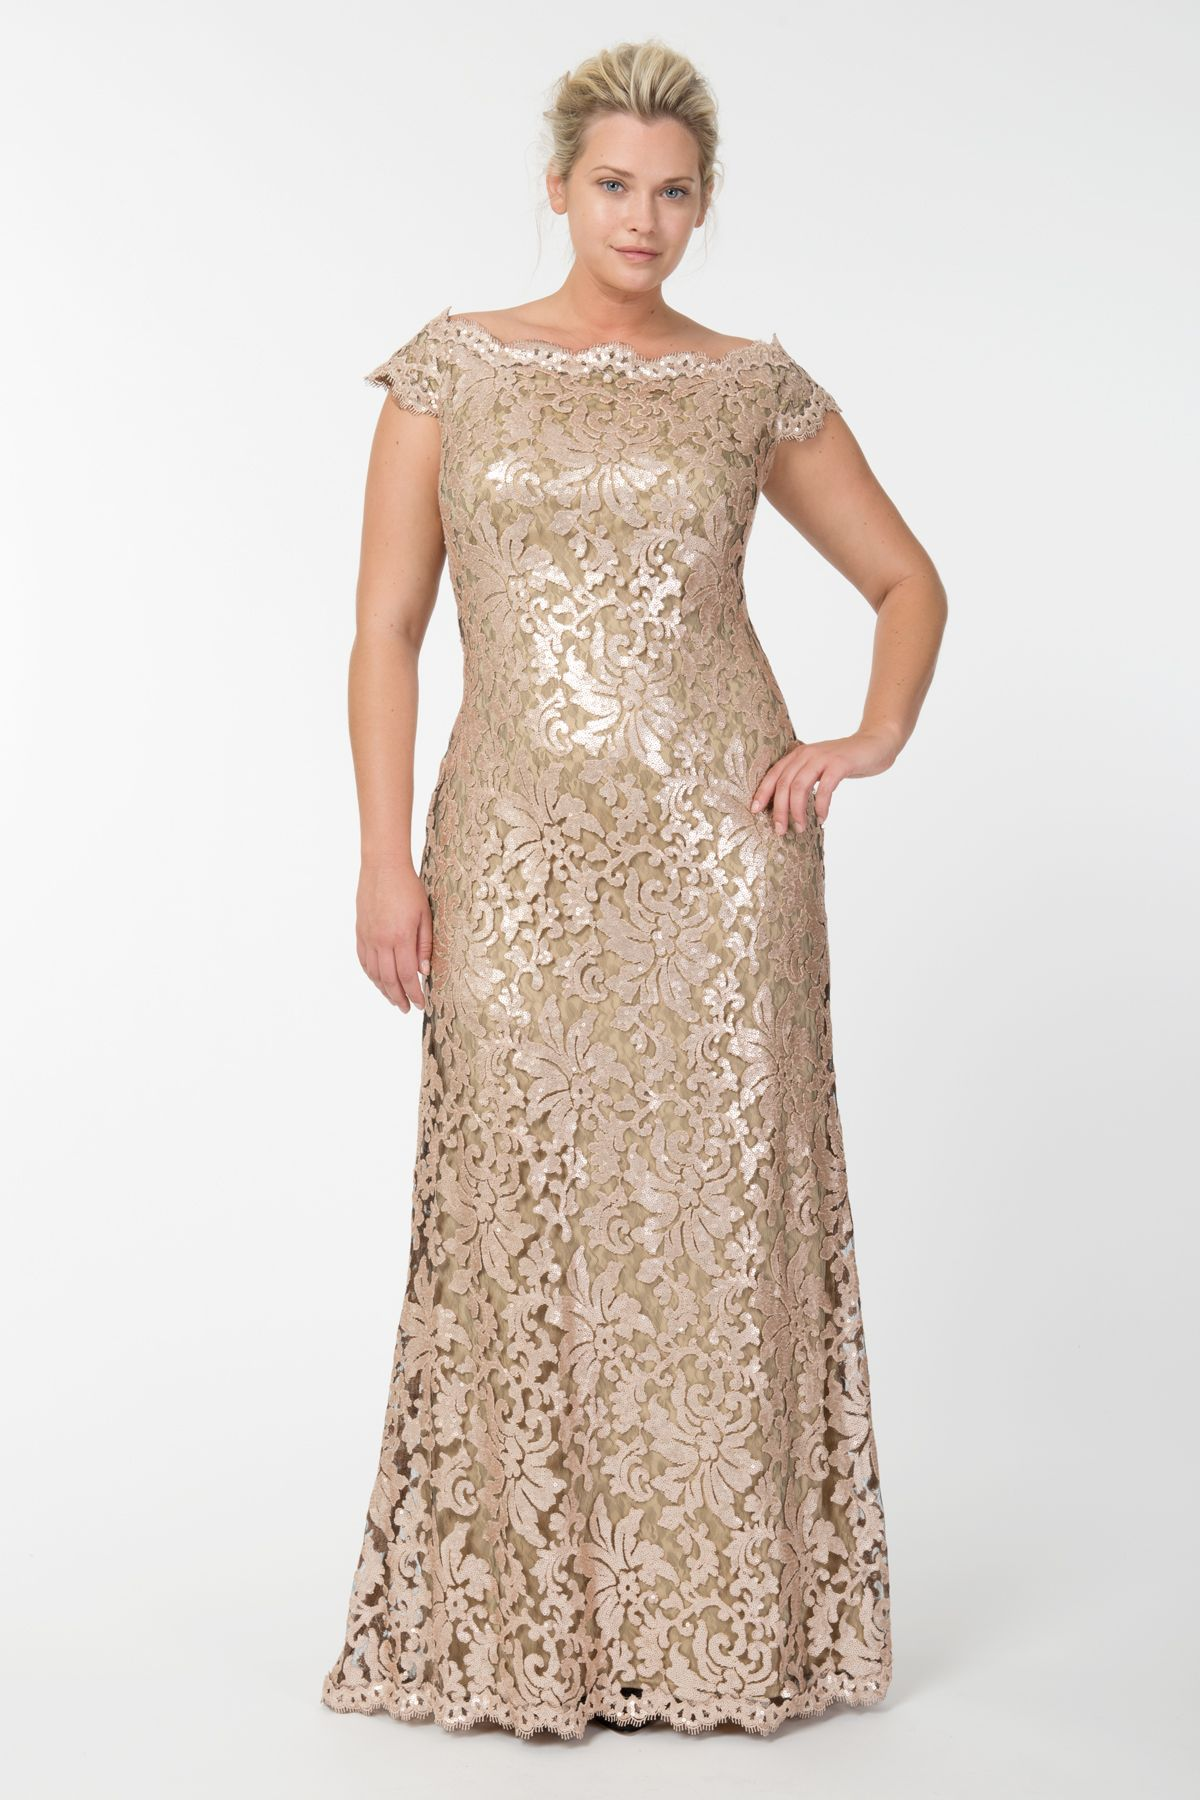 Short champagne wedding dresses  Love this style for the Casino Royale theme for World Conference